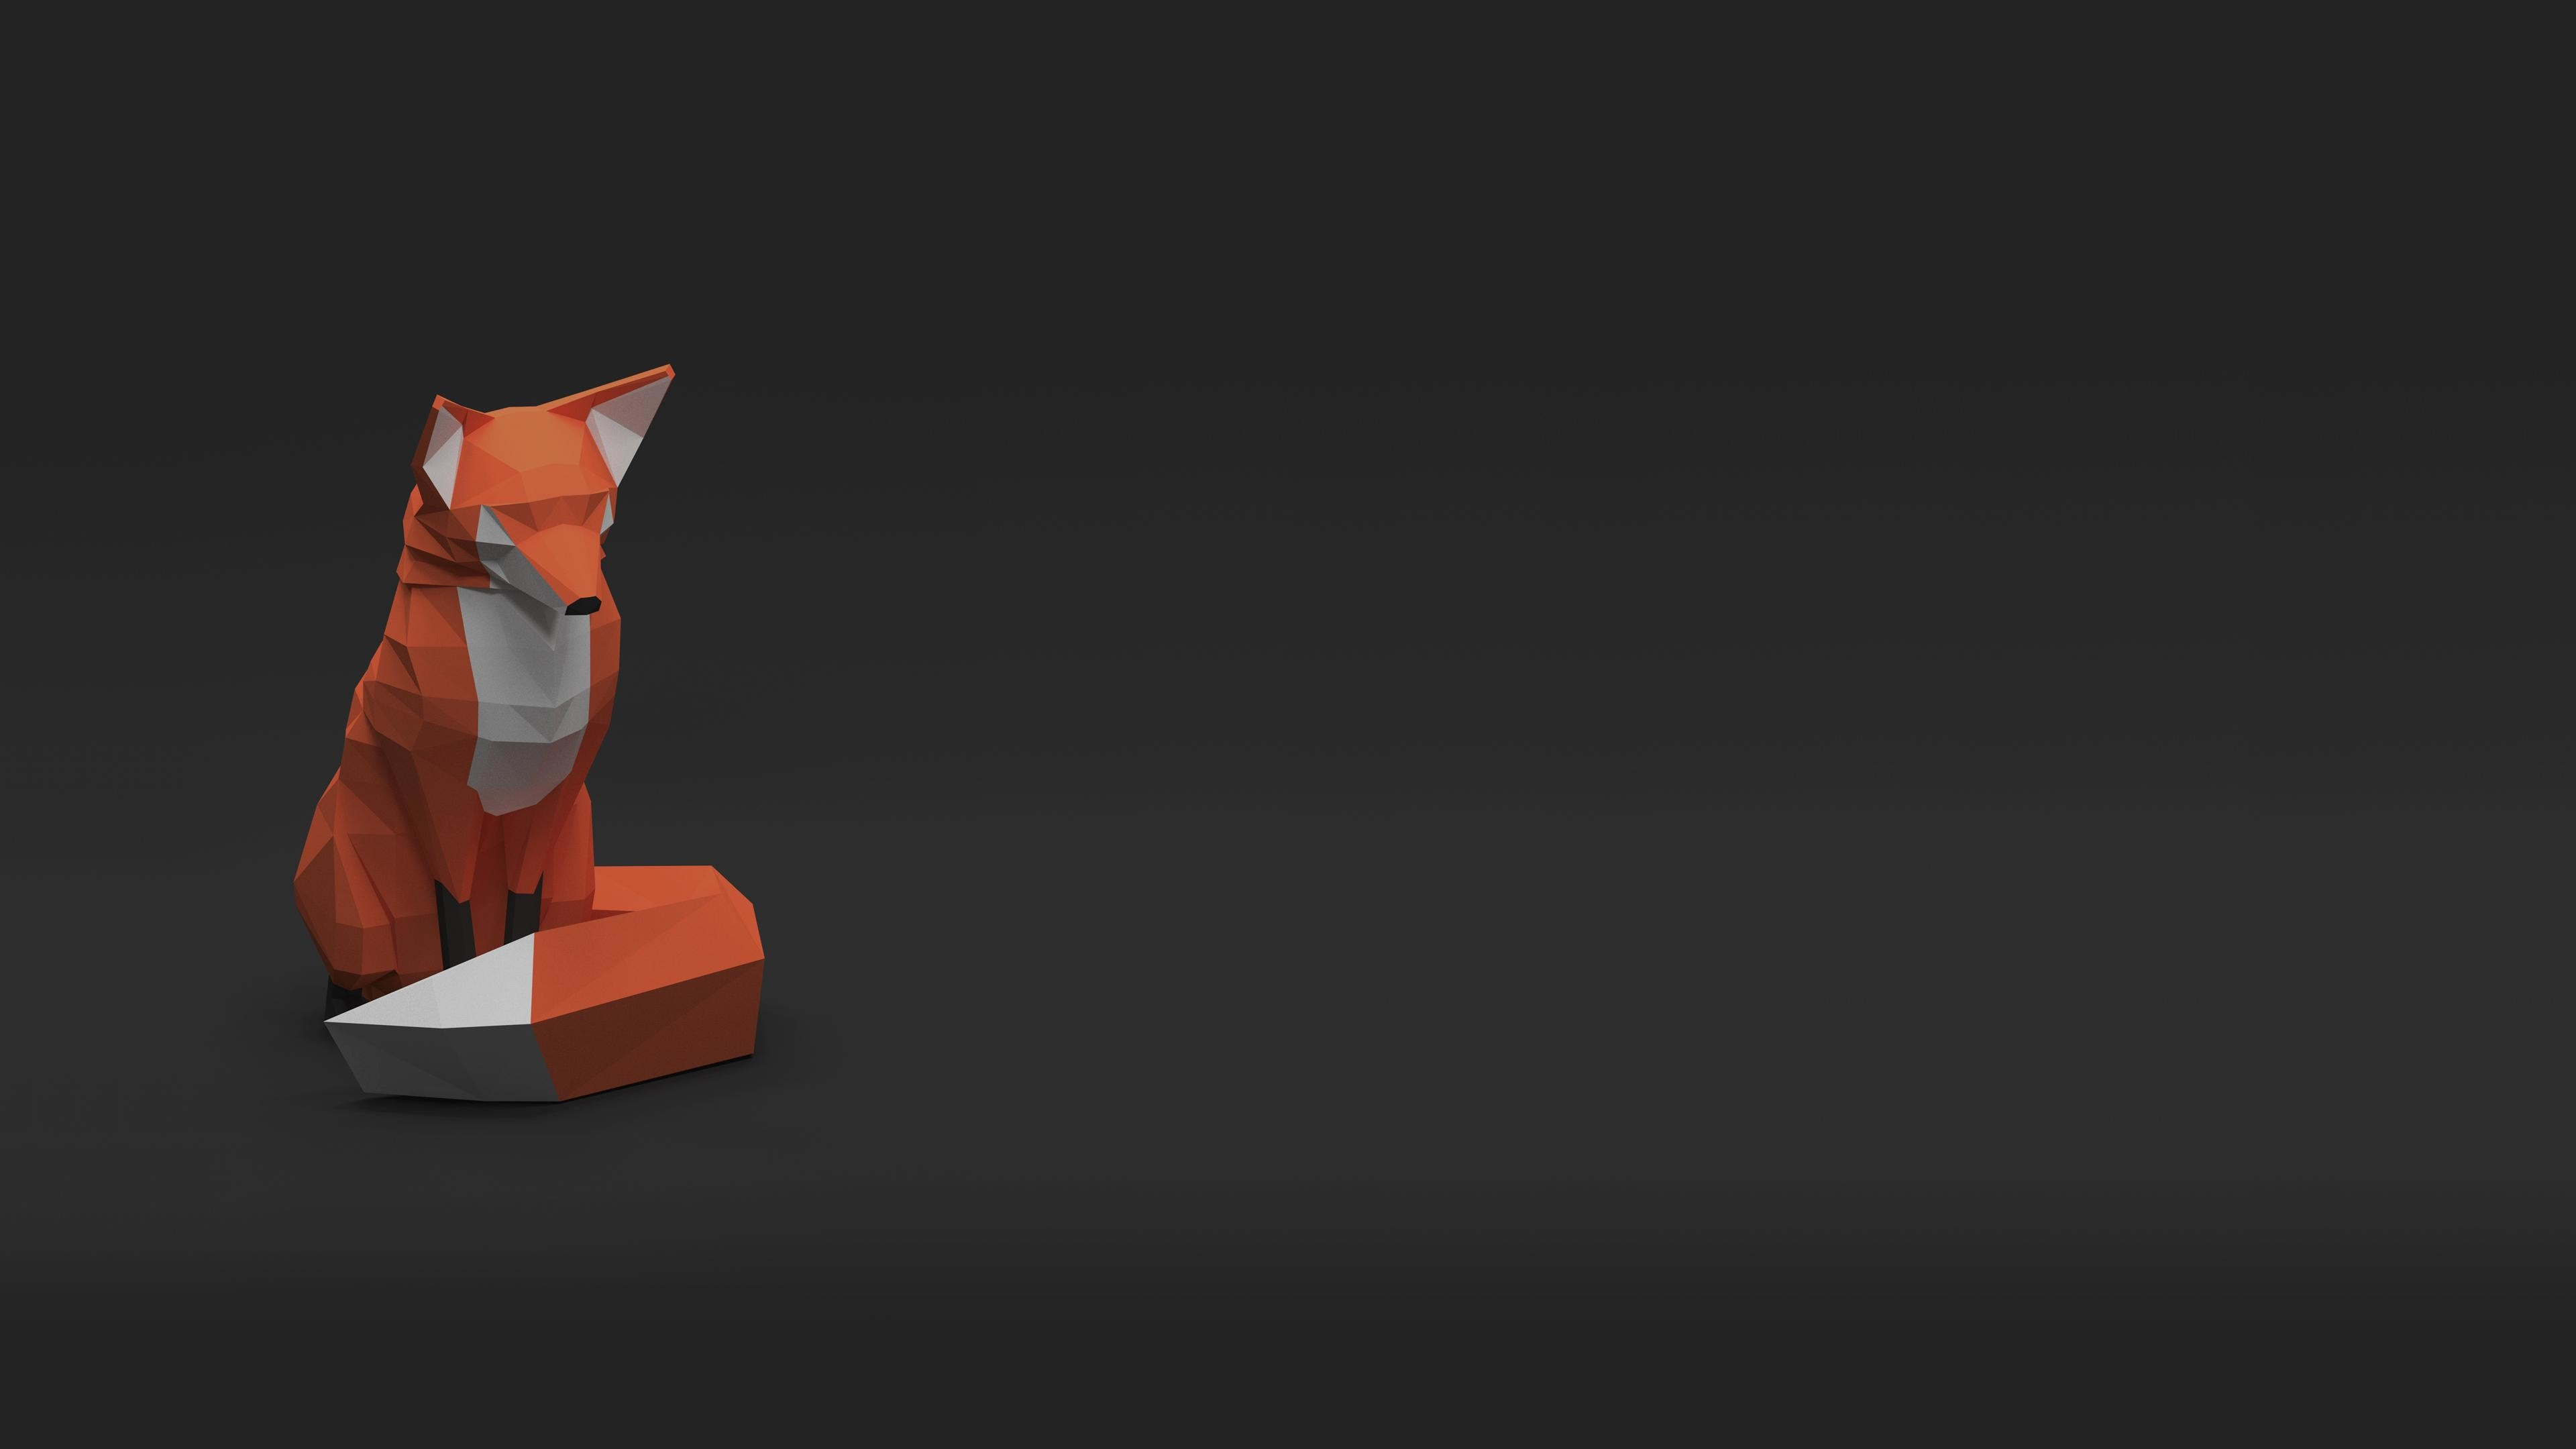 Res: 3840x2160, Low Poly Fox